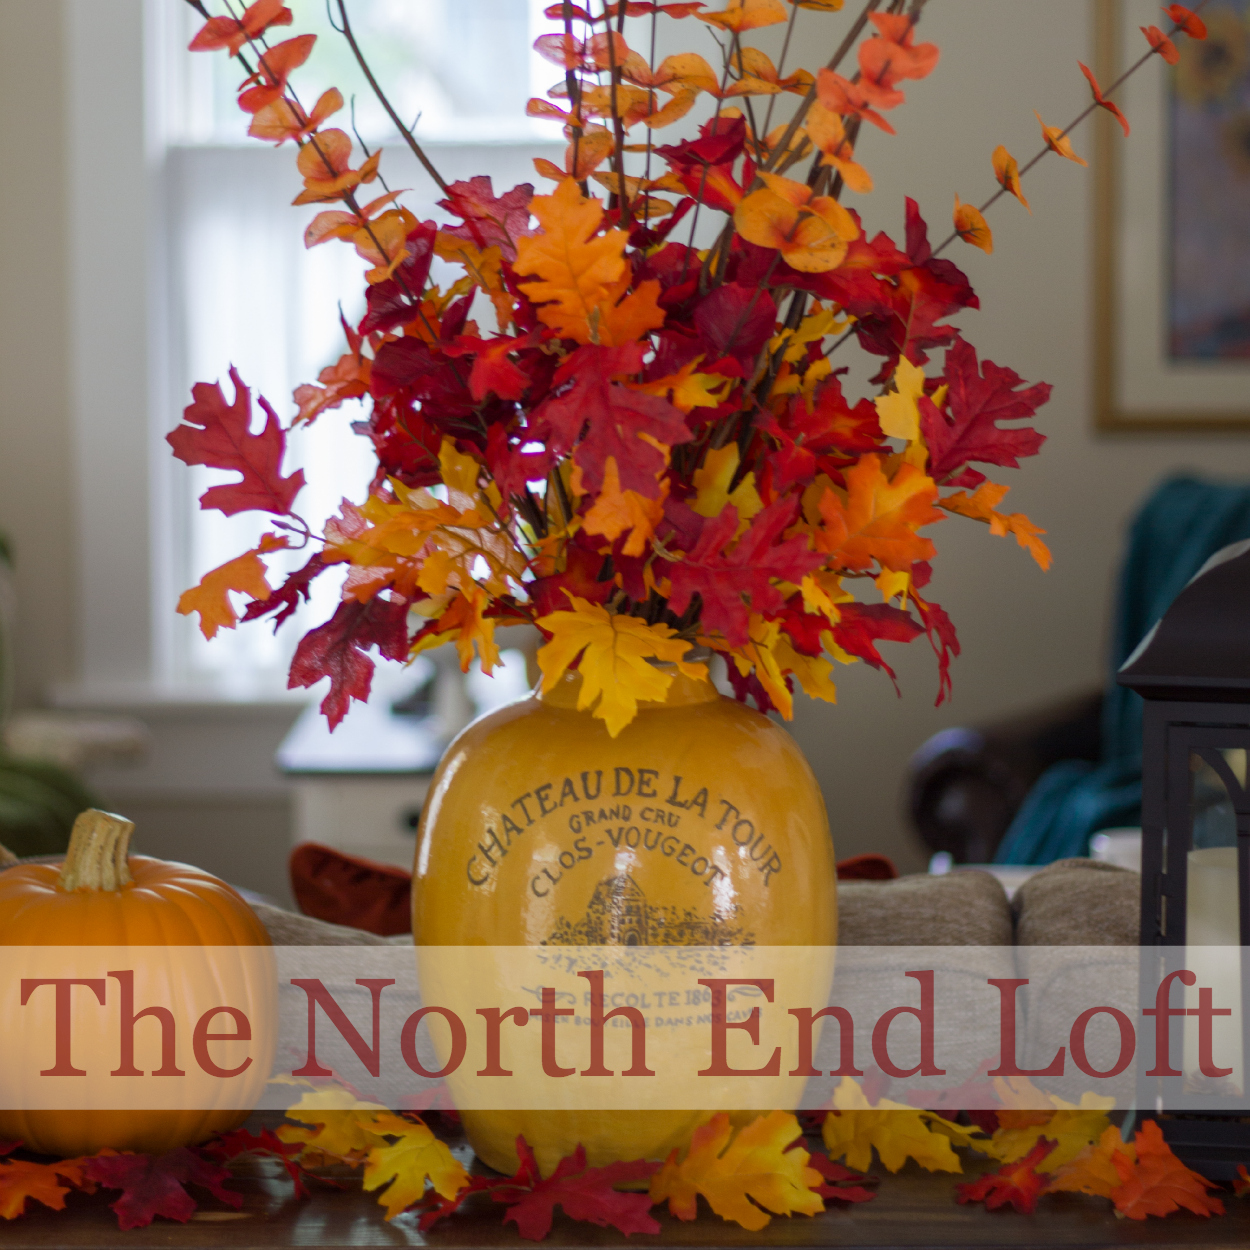 Living Room Decorating Ideas For Fall: The North End Loft: Living Room Updates And Fall Decor